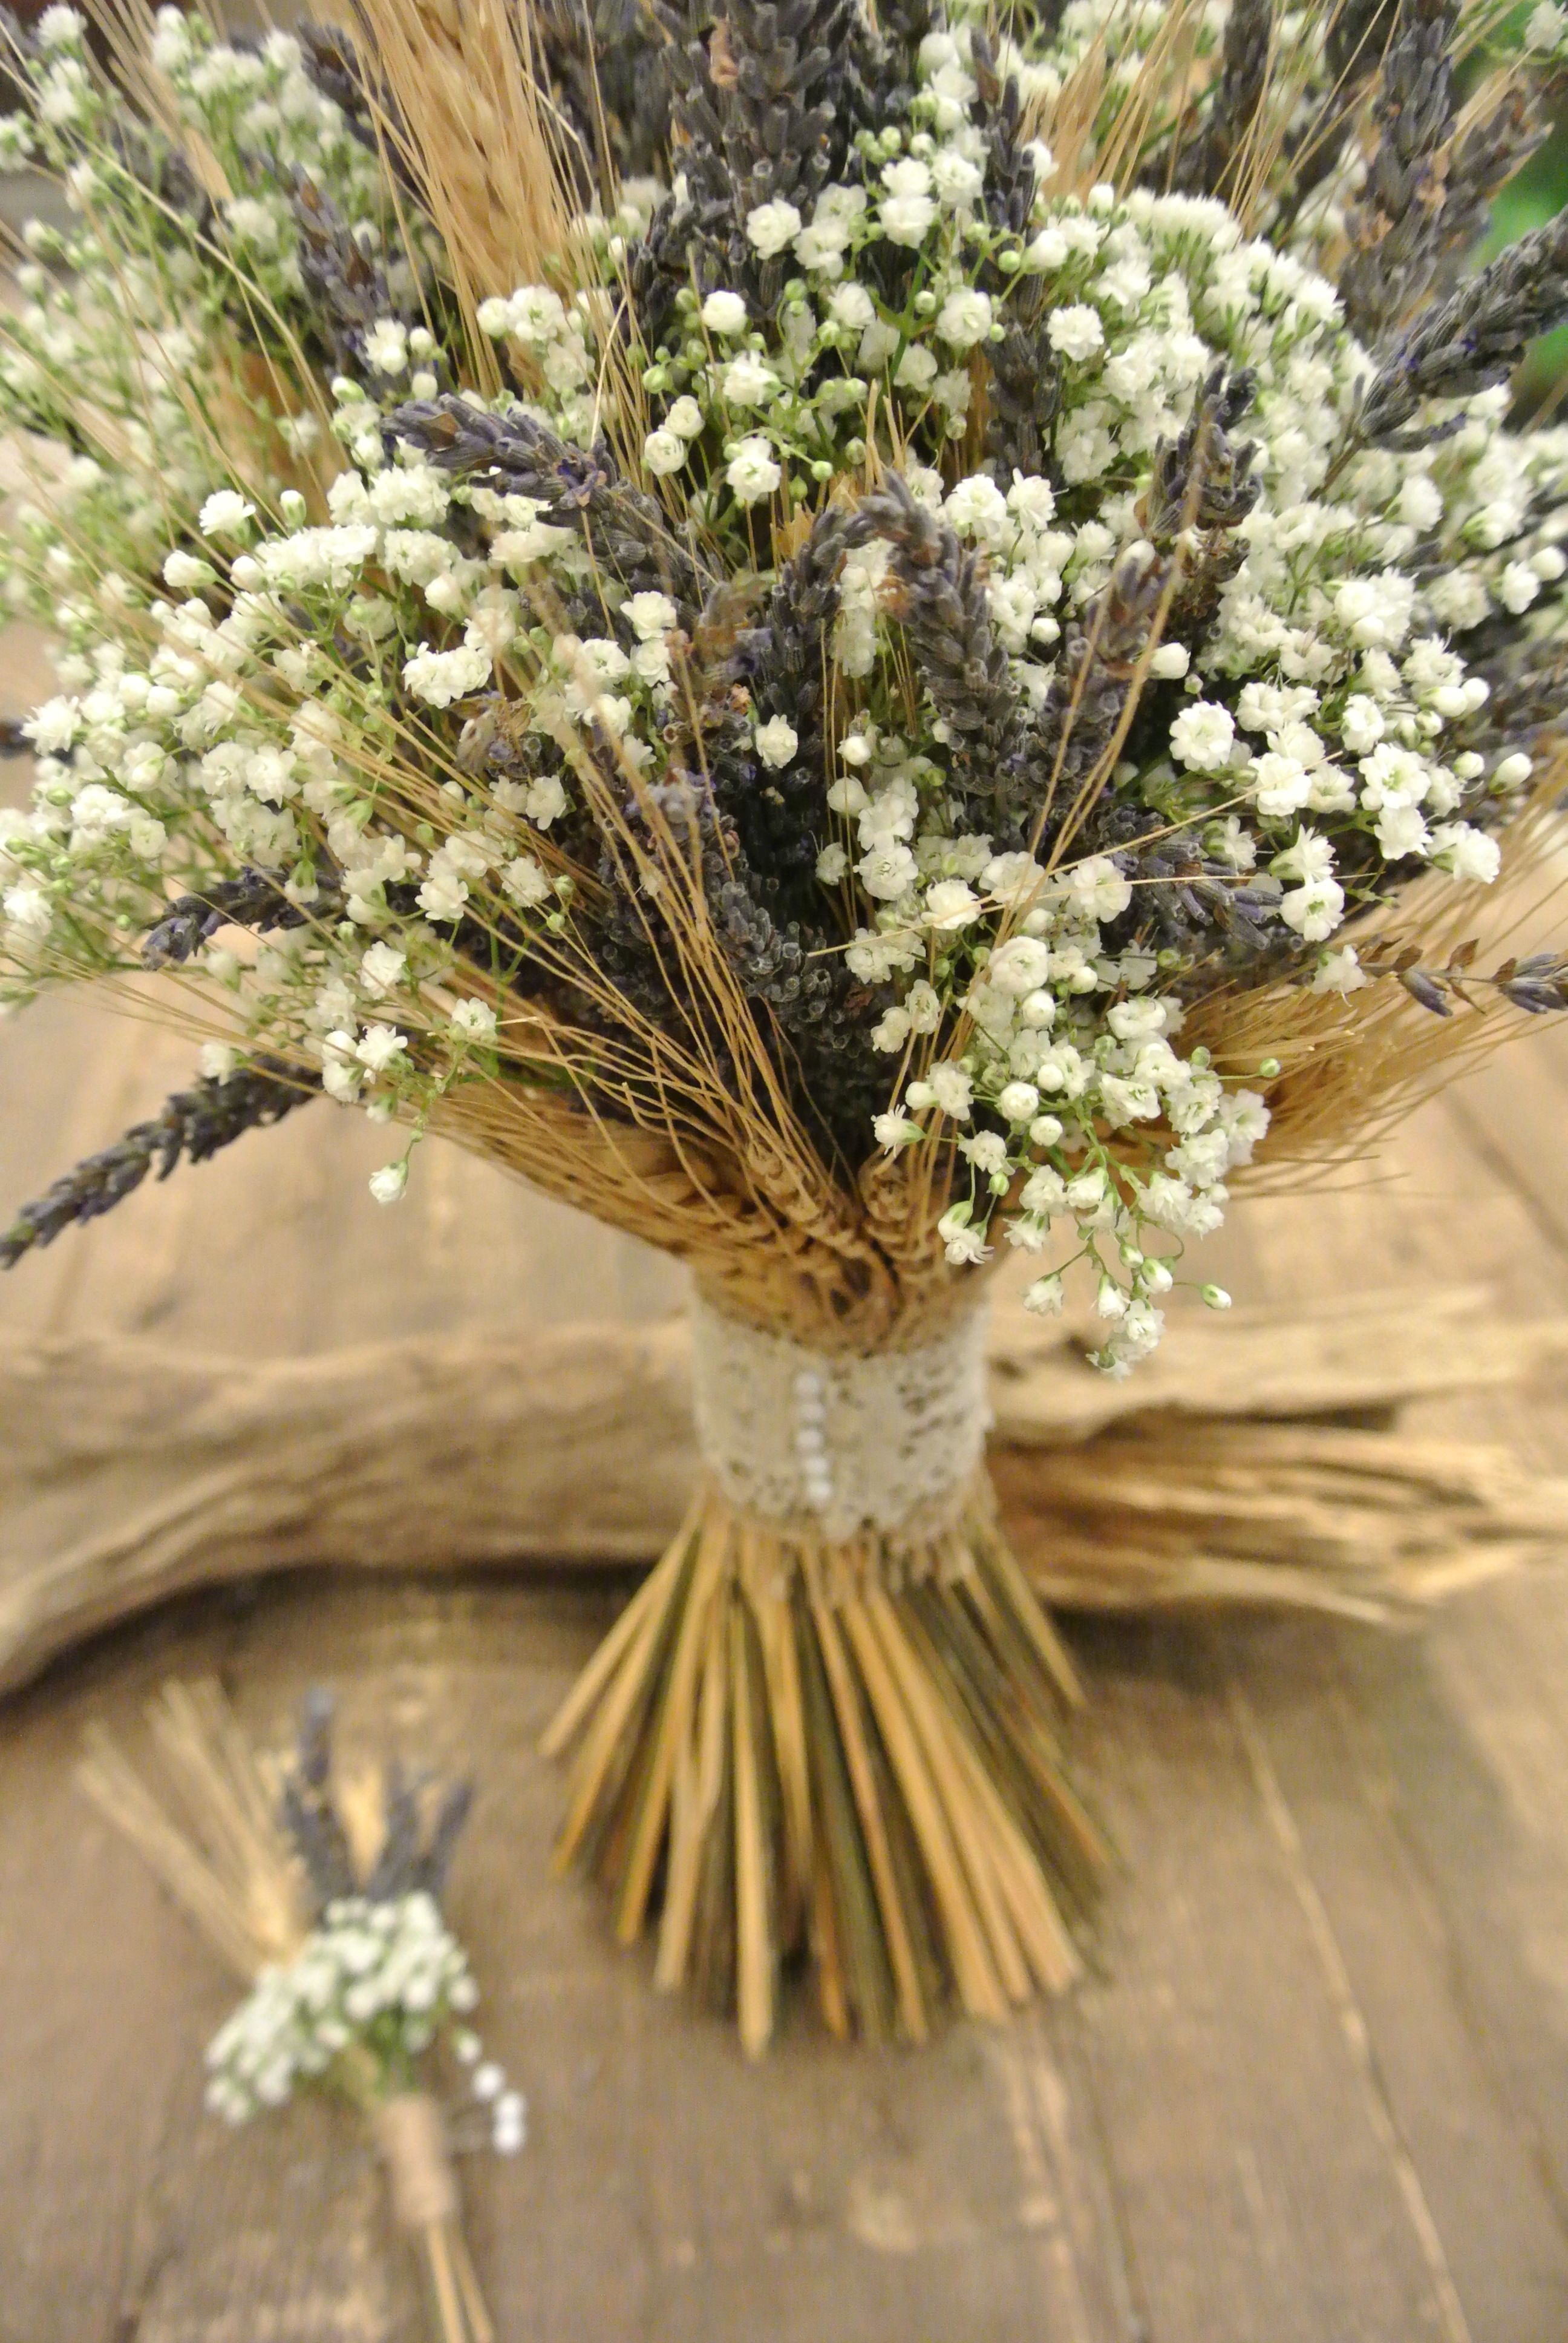 Rustic bridal bouquet with wheat lavender and babys breath rustic bridal bouquet with wheat lavender and babys breath designed by forget me not flowers izmirmasajfo